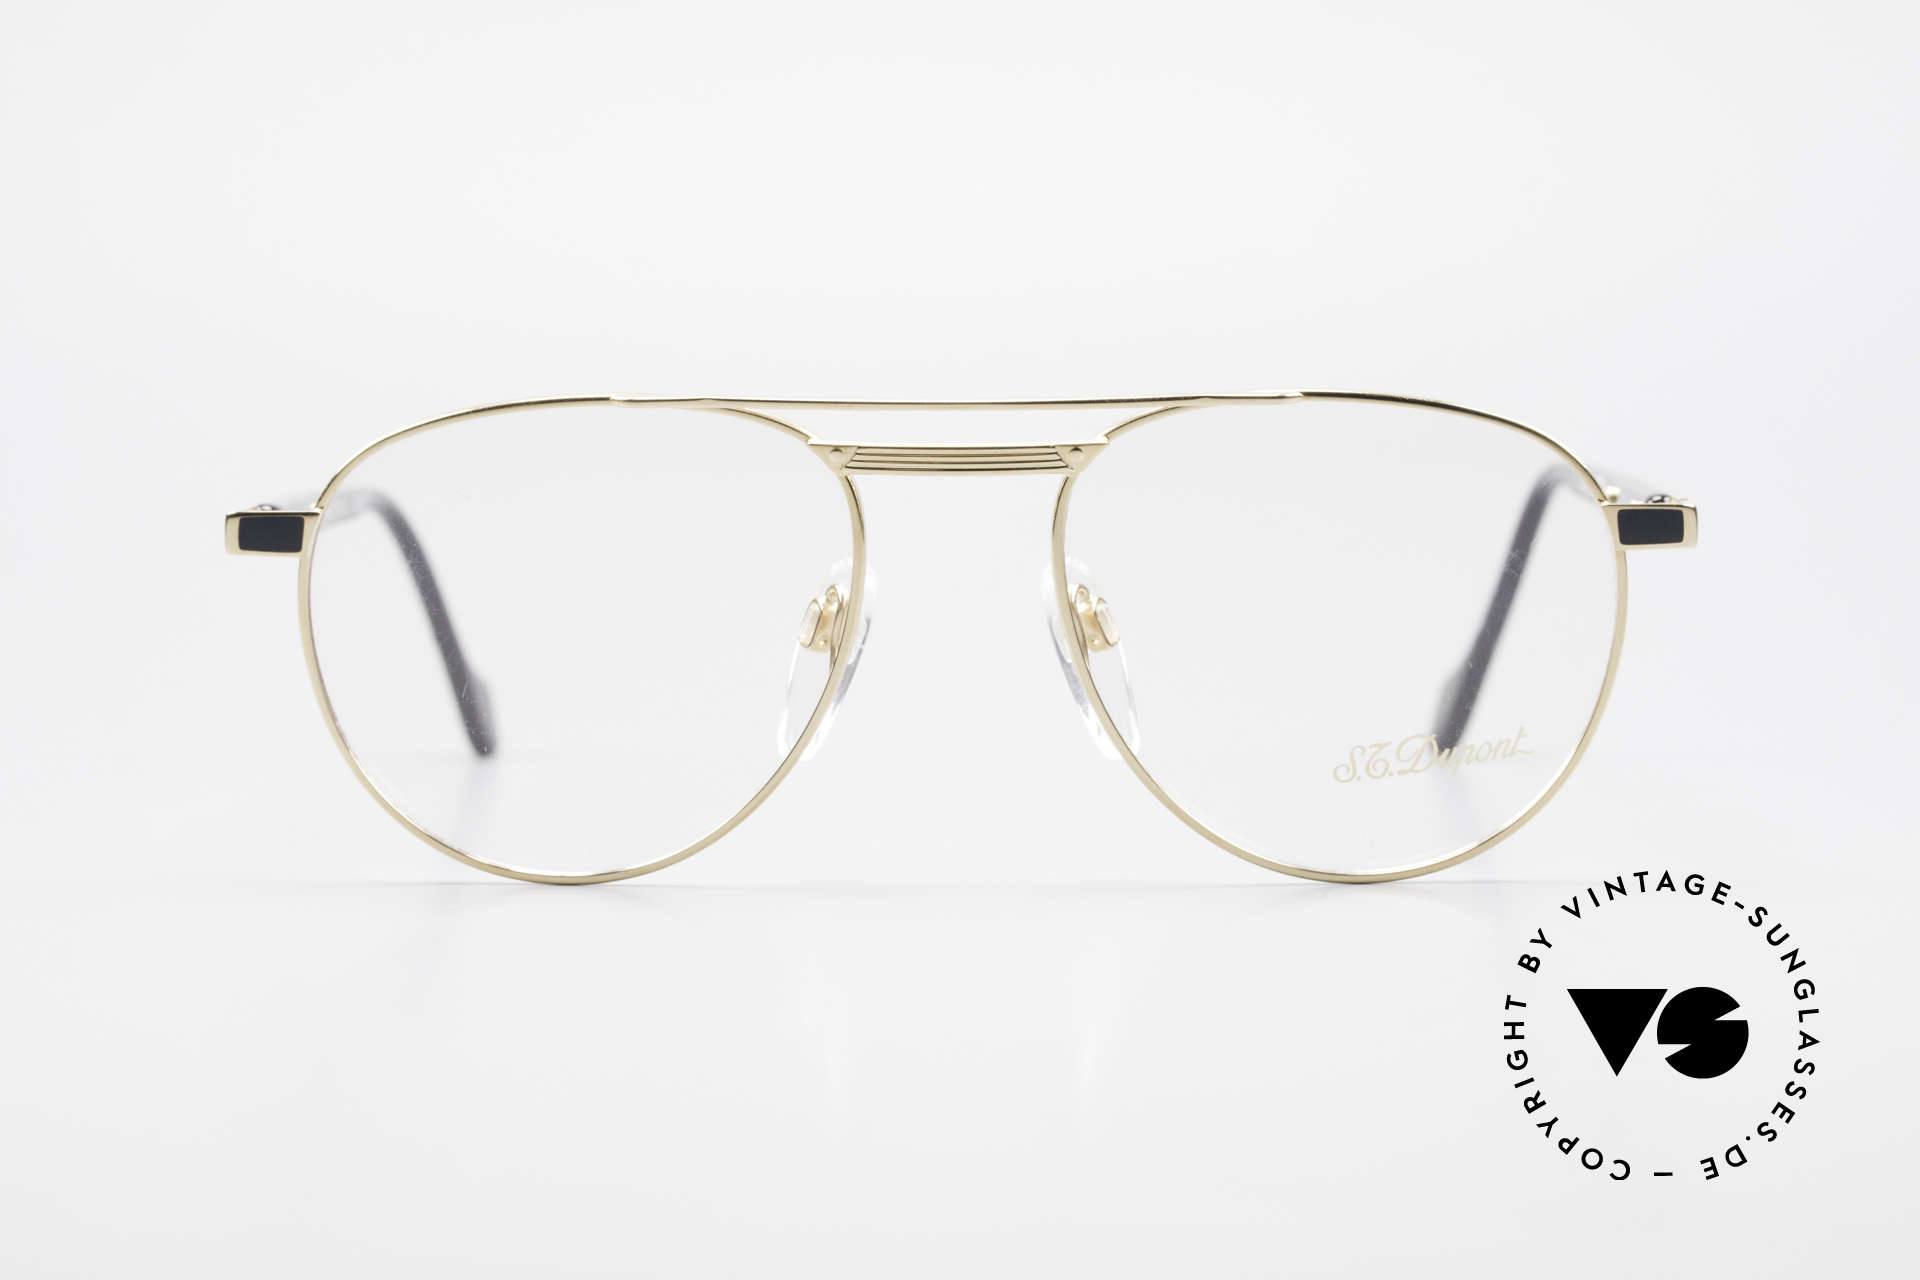 S.T. Dupont D004 Men's Luxury Aviator Glasses, top craftsmanship (all Dupont frames are gold-plated), Made for Men